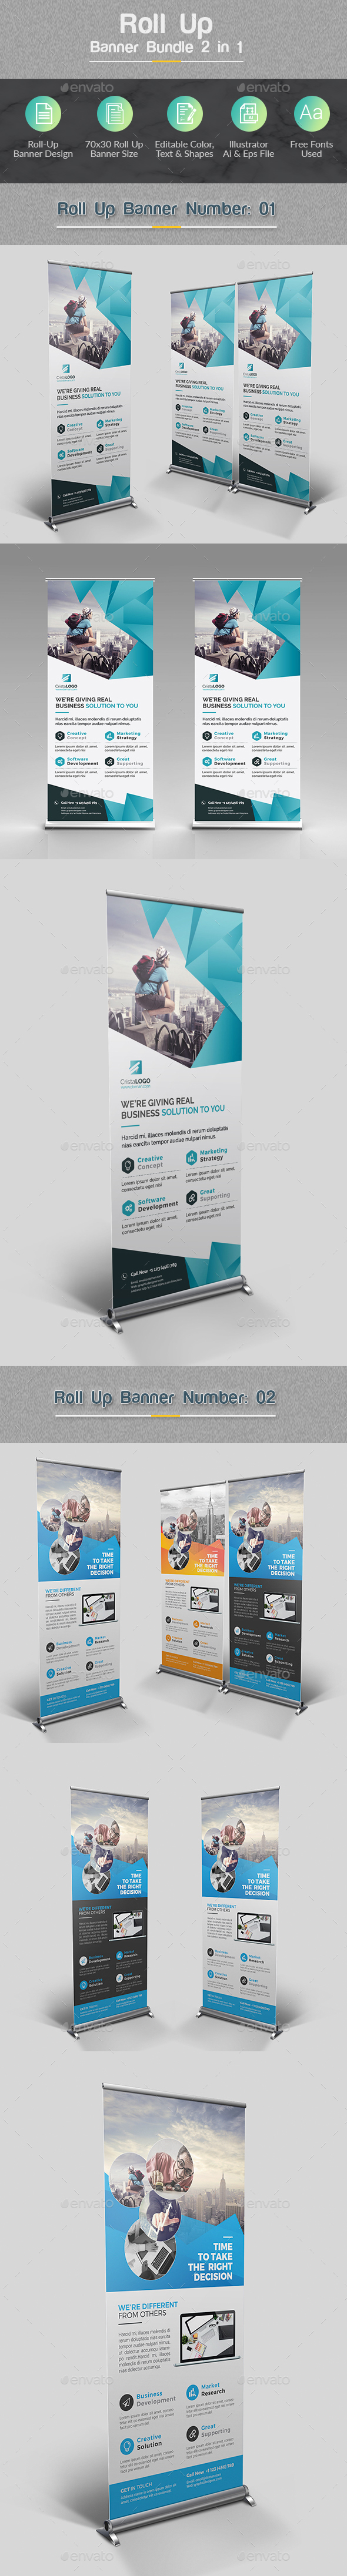 Roll Up Banner Bundle 2 in 1 - Signage Print Templates